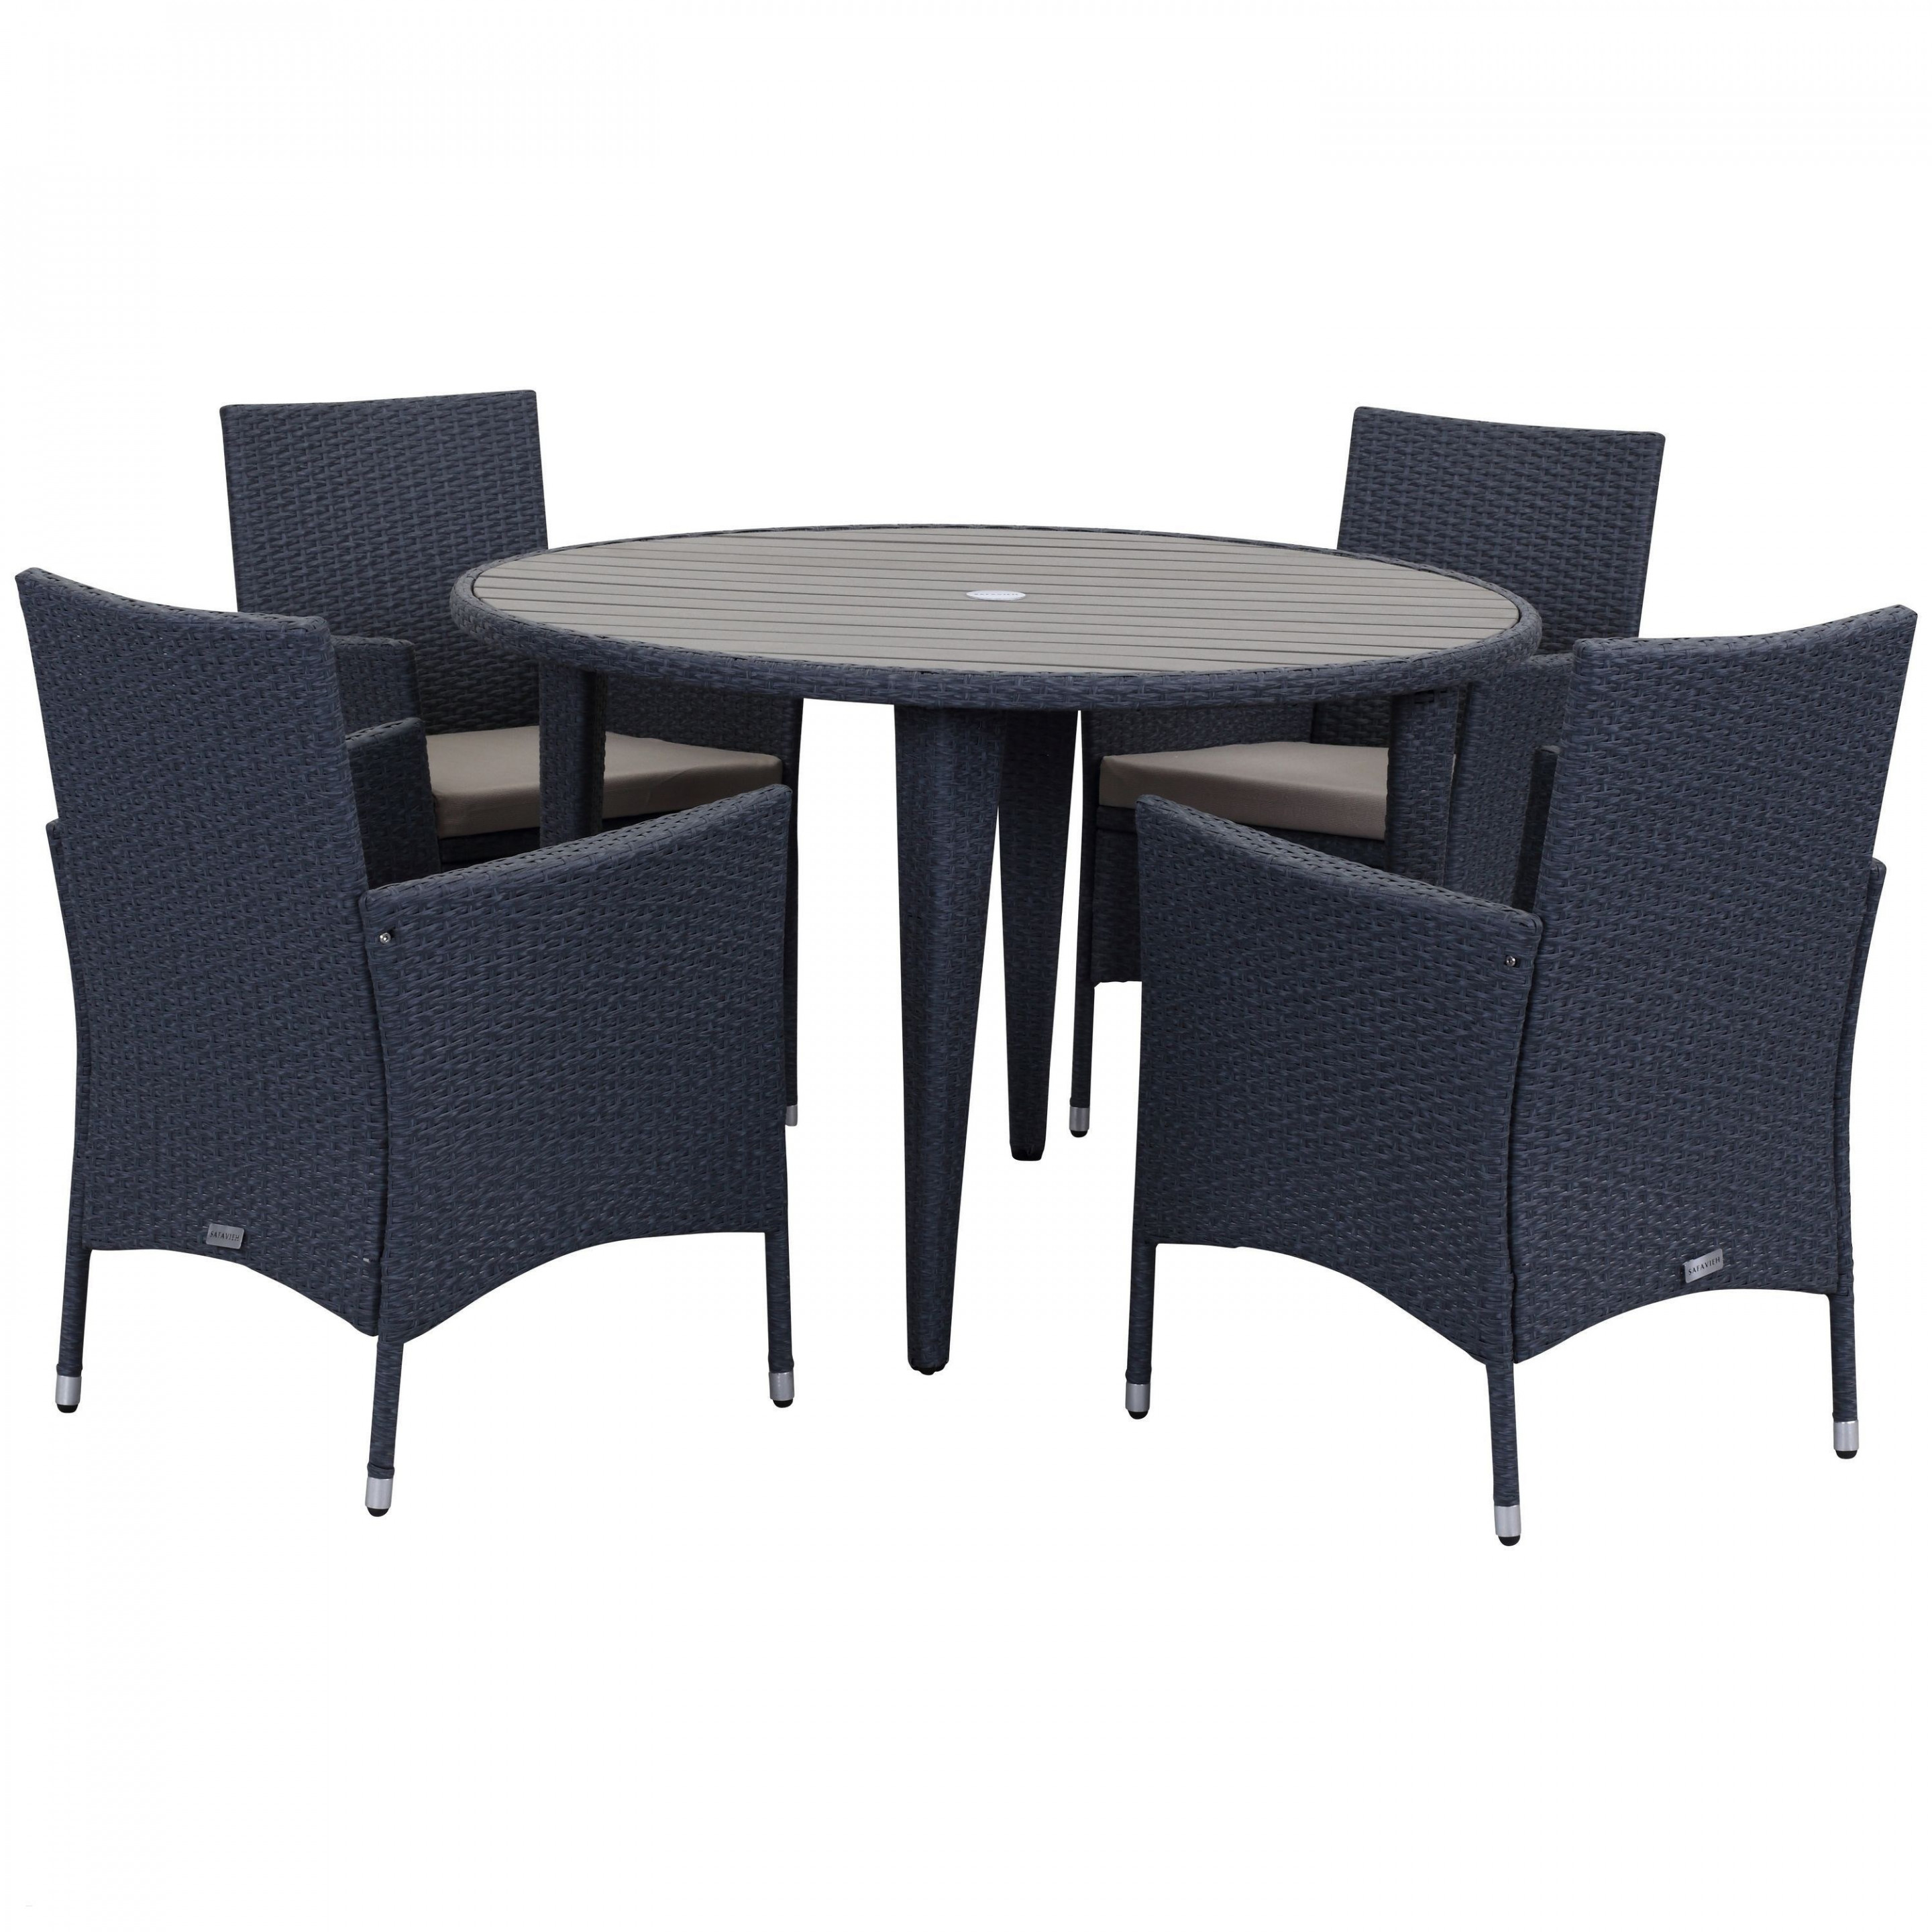 dining room tables oval lovely outdoor side table with storage accent new black wicker furniture designer white coffee west elm kitchen island glass console toronto pier ornaments